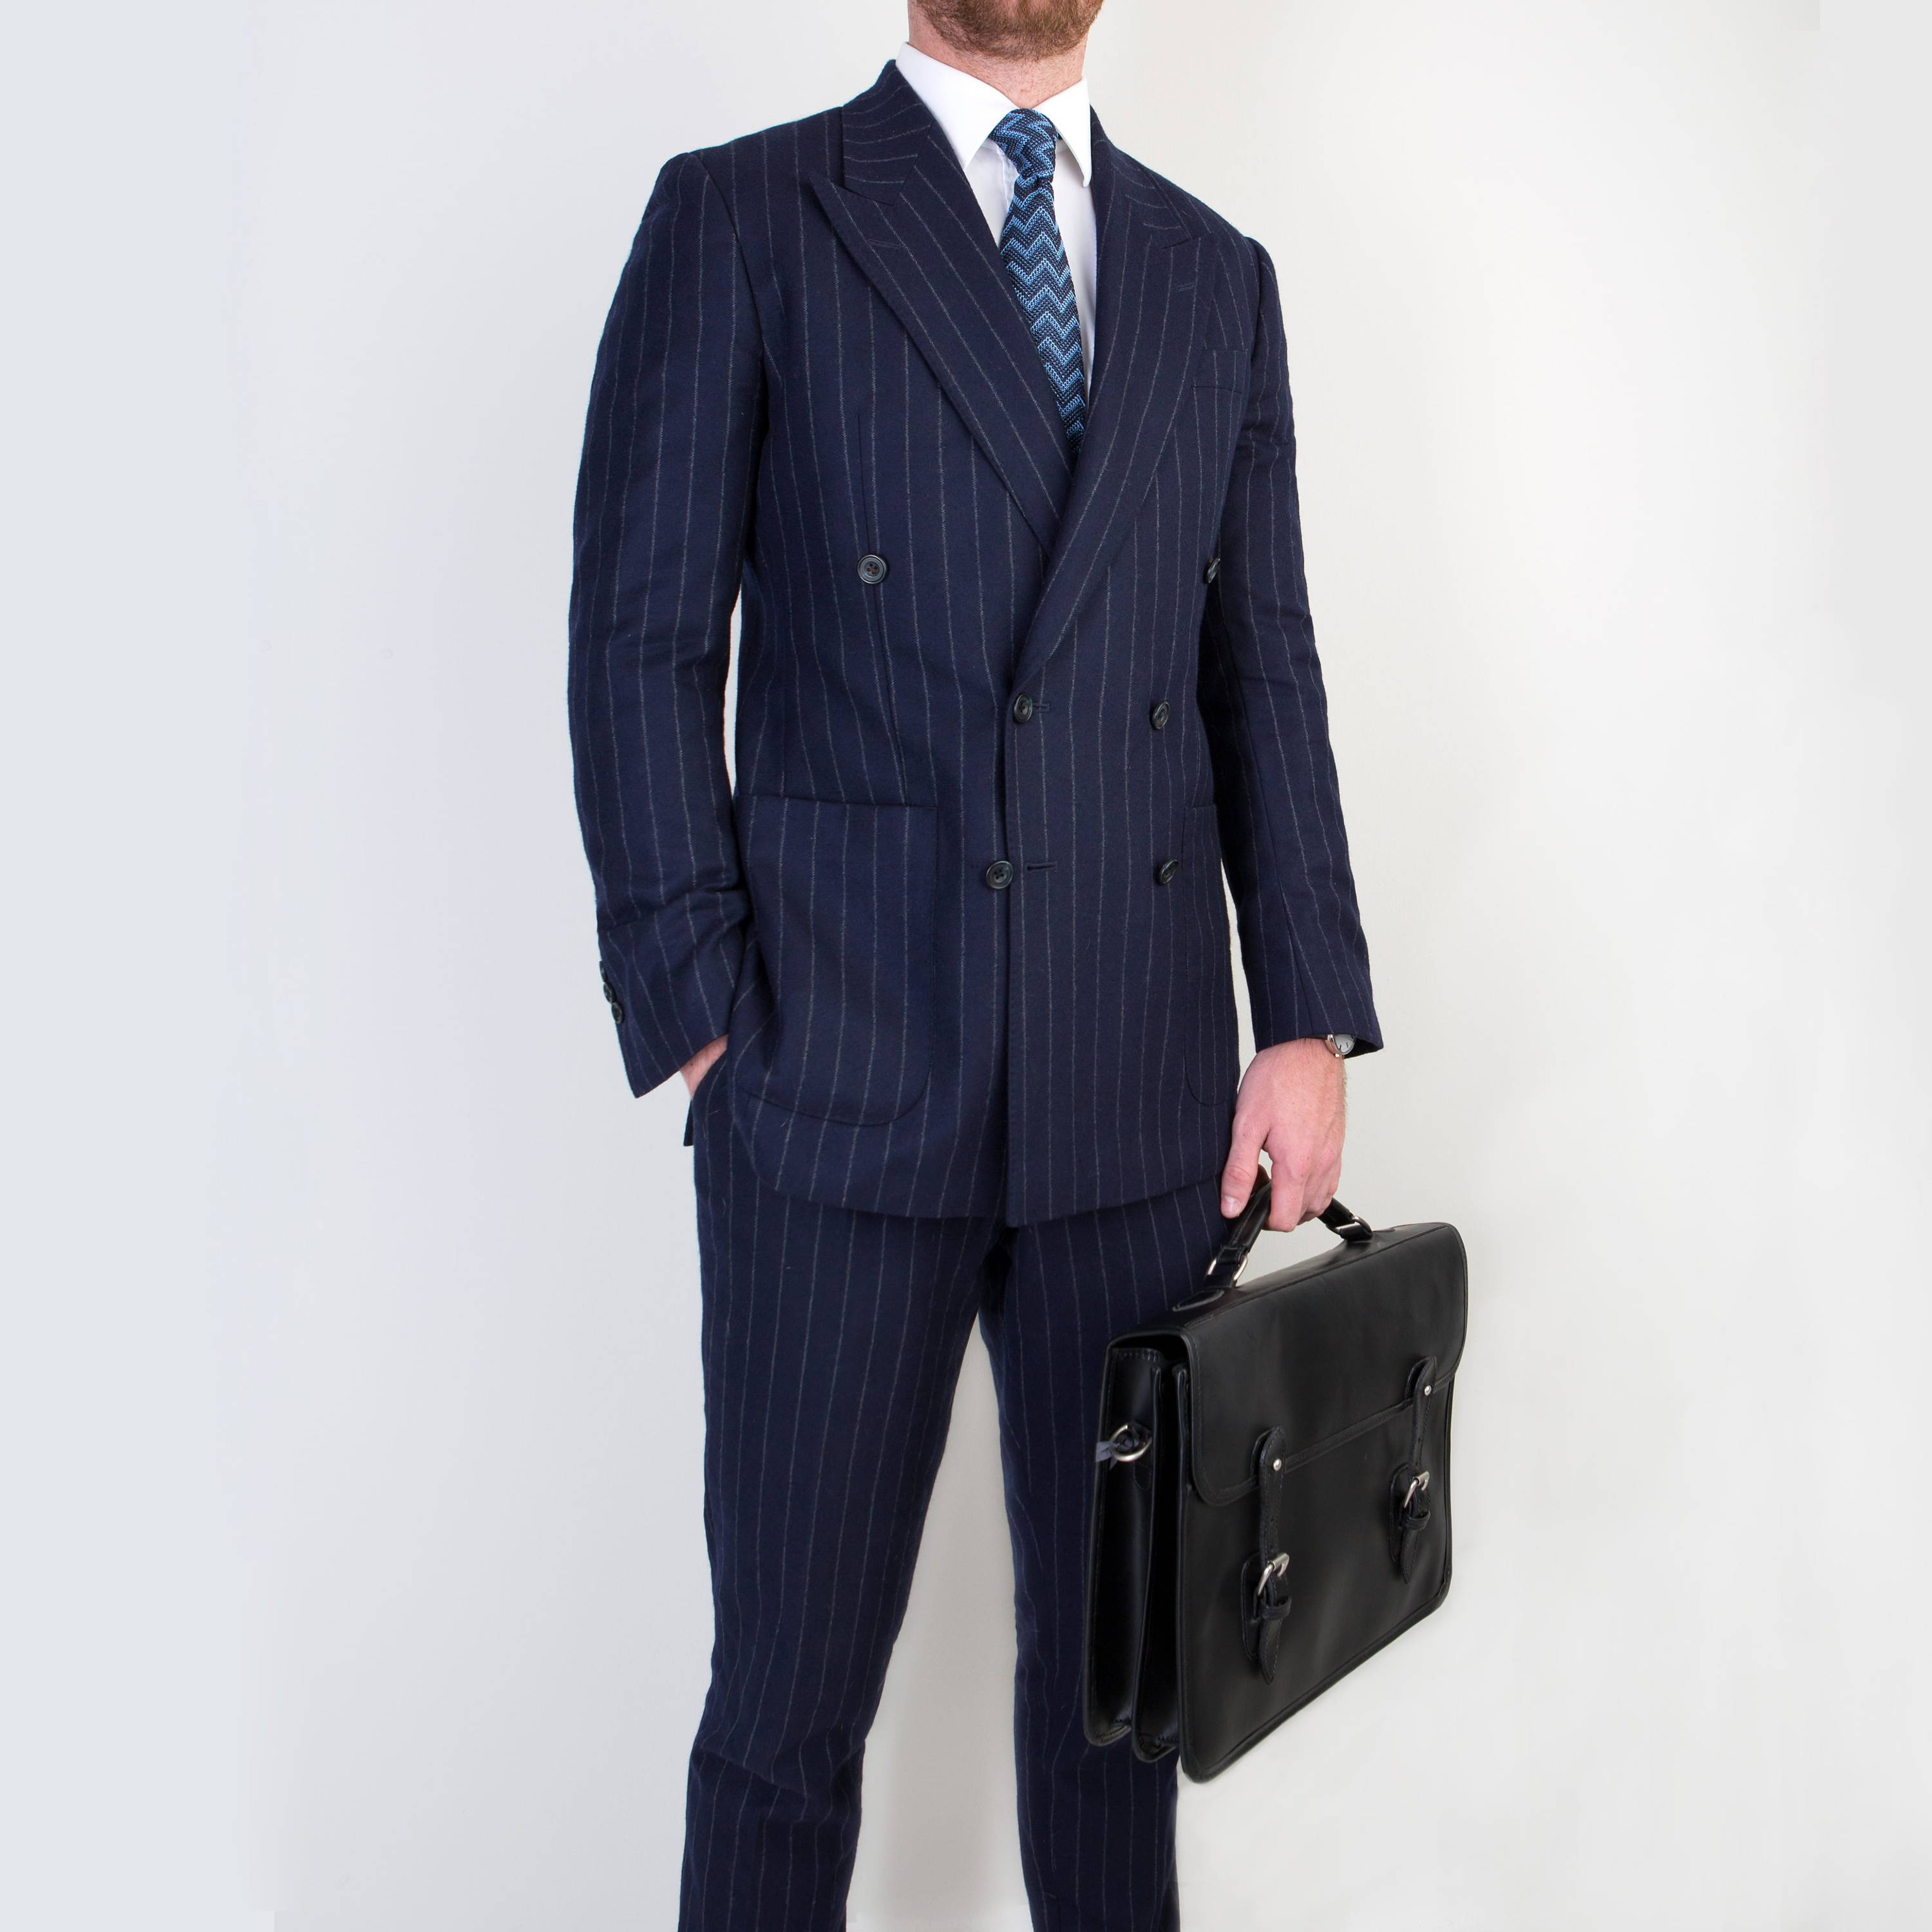 Gentleman wearing double breasted business suit by bespoke tailors Mullen and Mullen